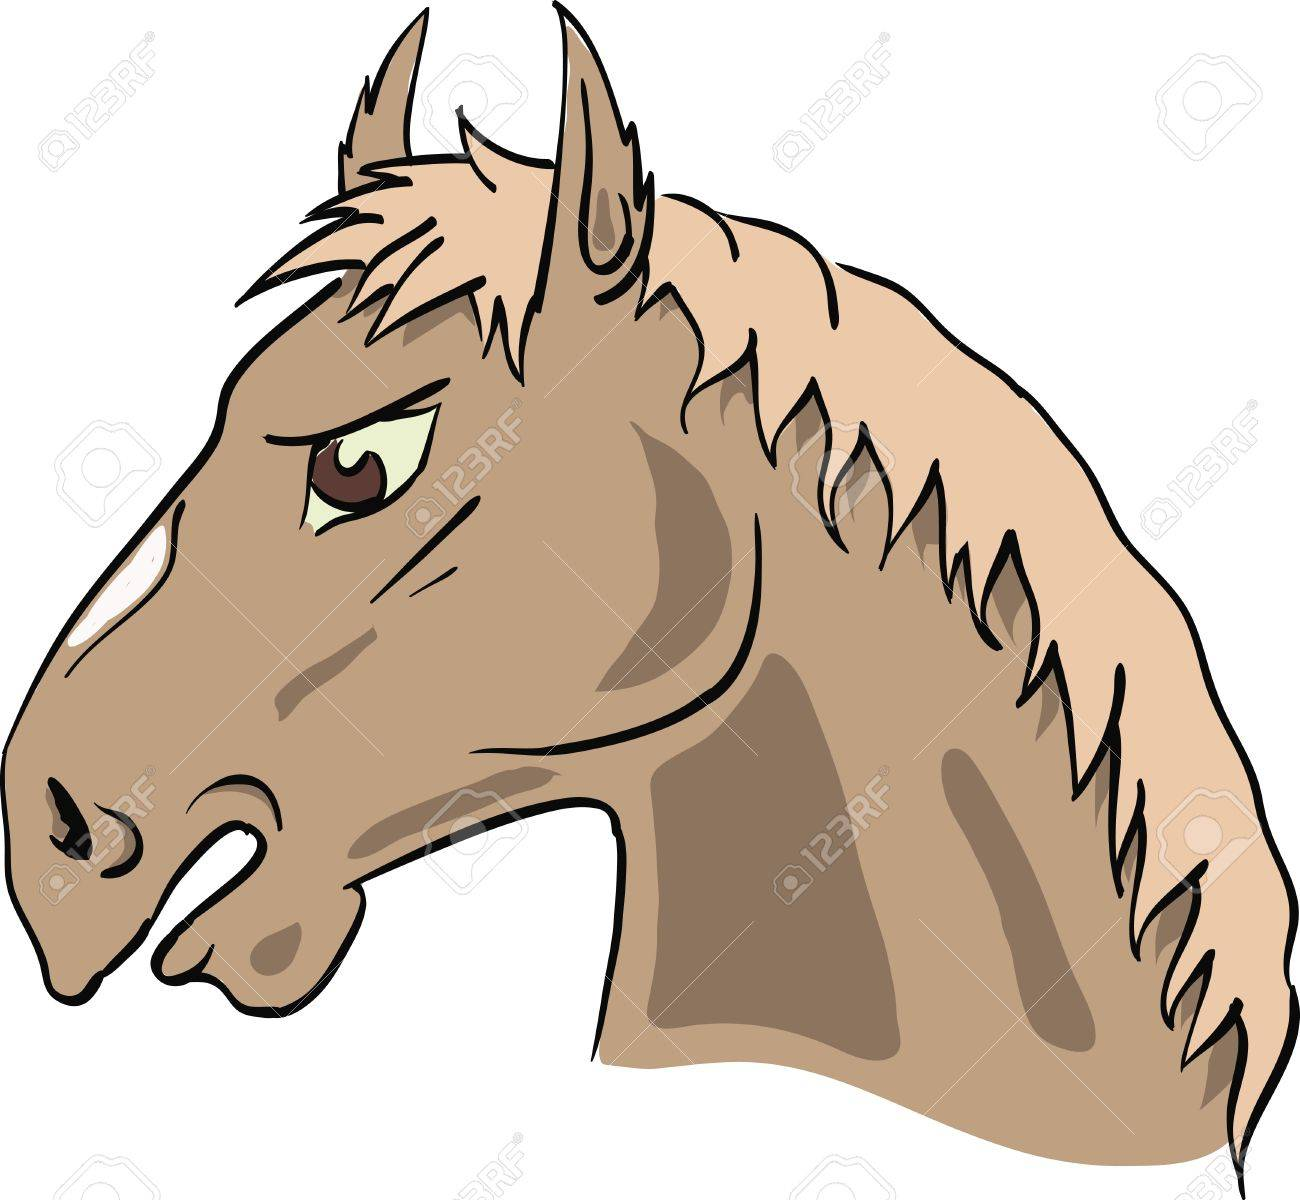 colorful illustration with horse's head for your design Stock Vector - 17152177